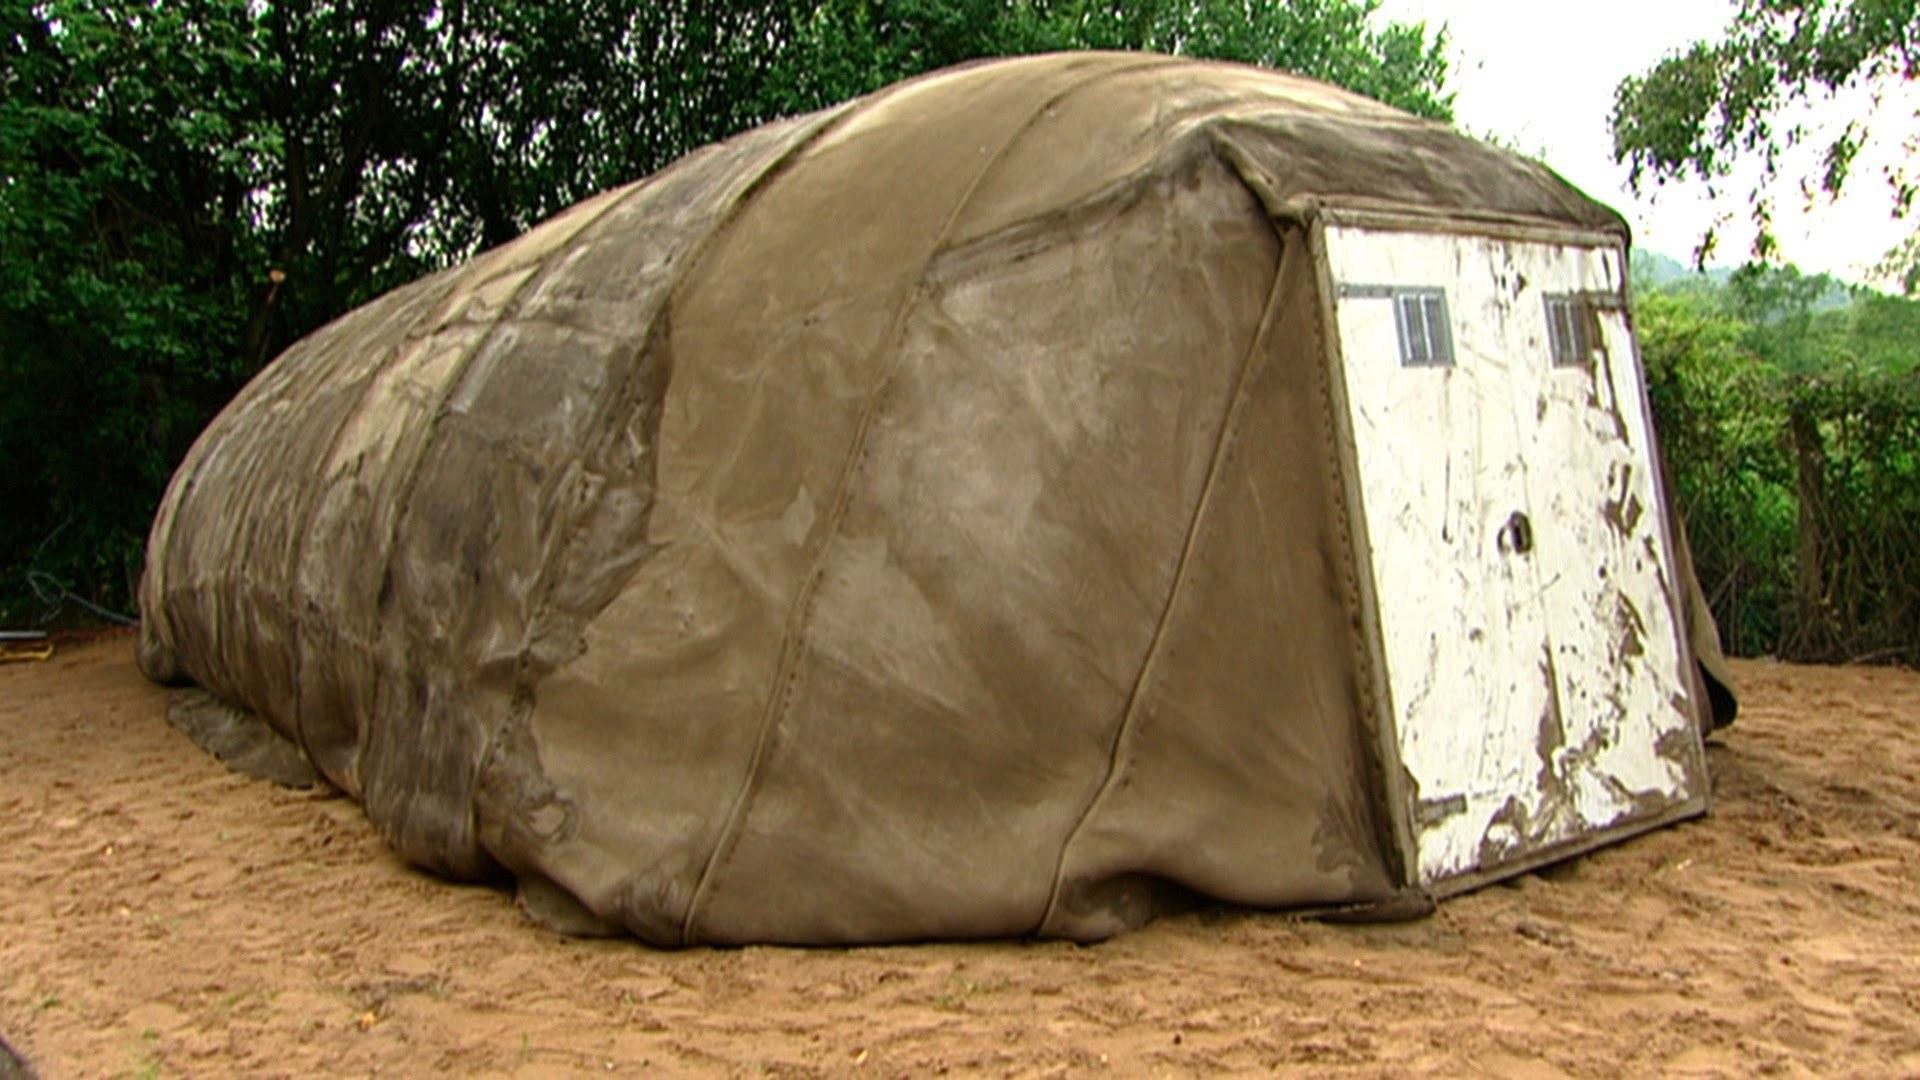 The Awesome Technology Of The Concrete Tent